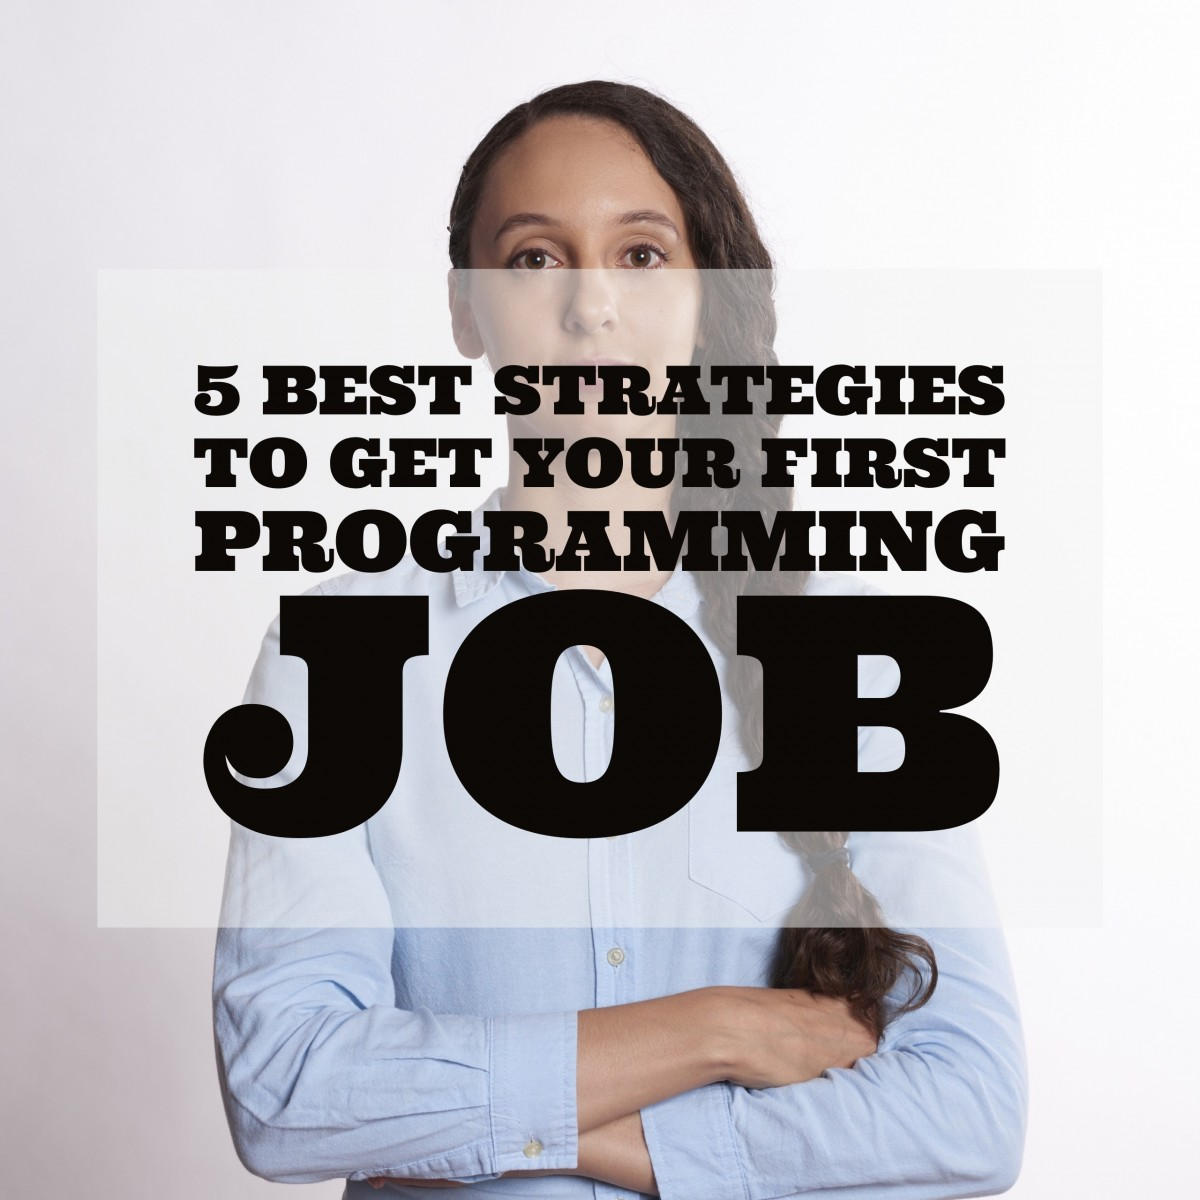 IMG_6128 5 Best Strategies To Get Your First Programming Job people job market interview hiring finding talent career advice